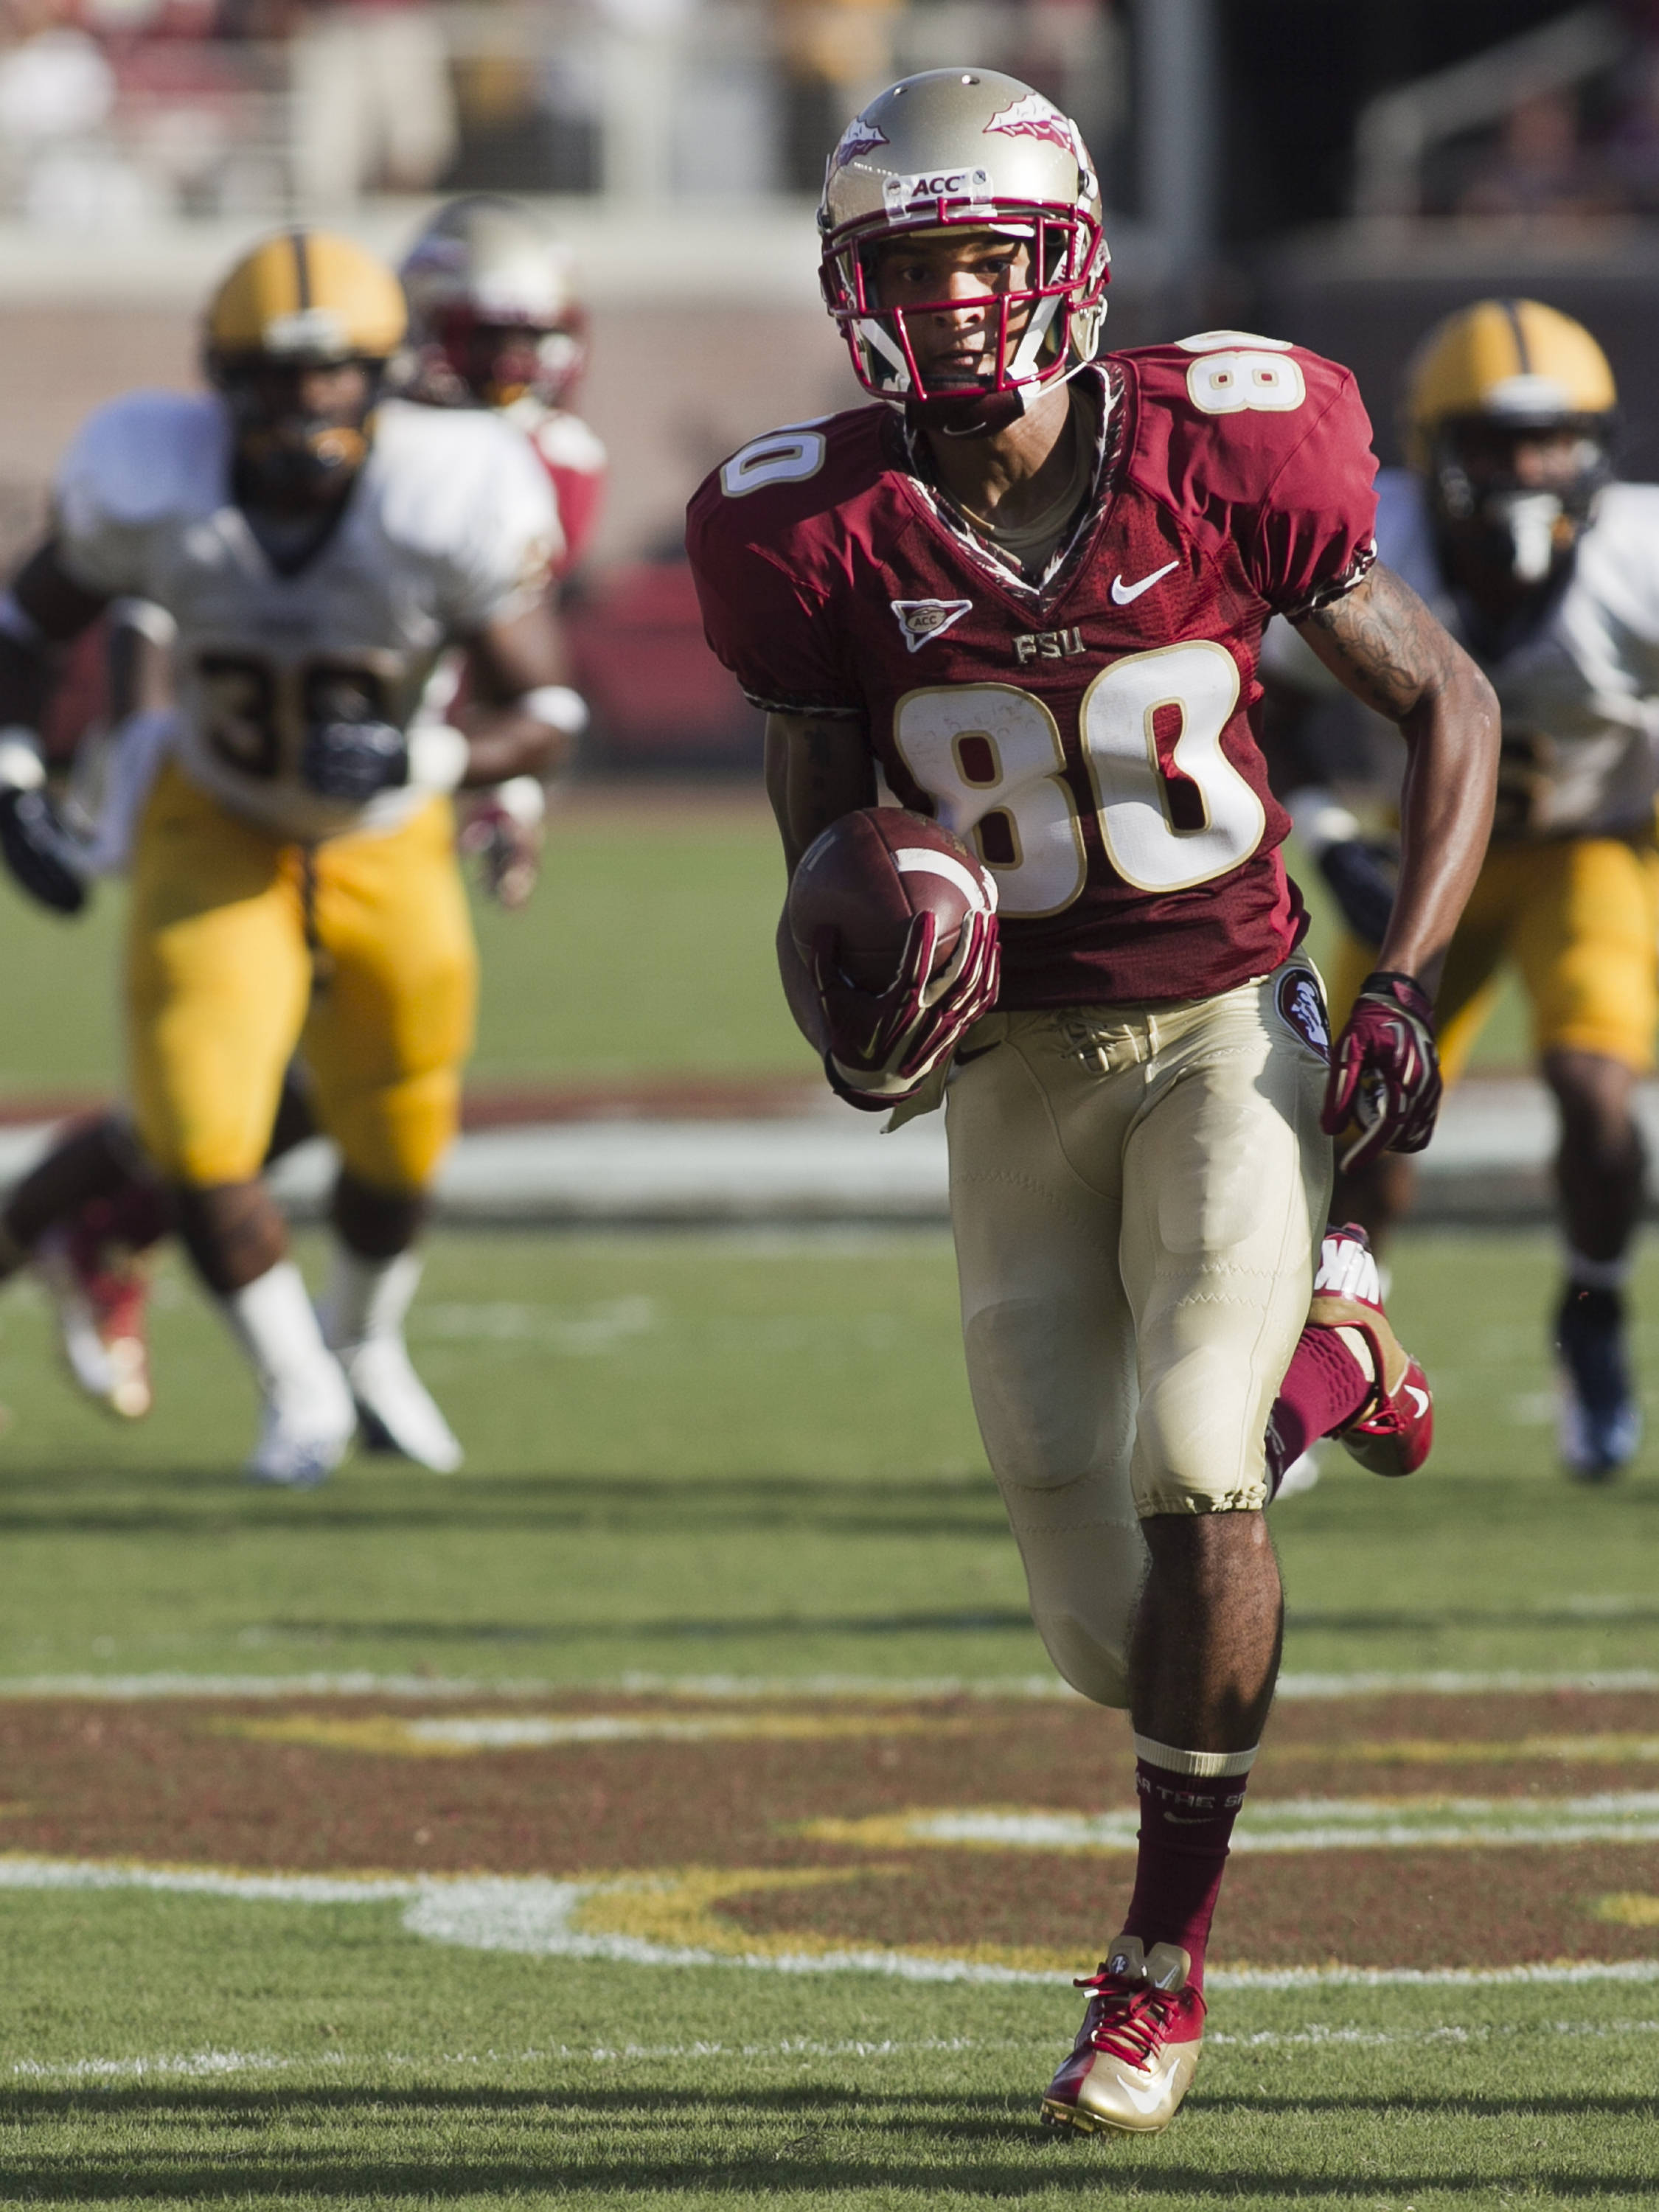 Rashad Greene (80),  FSU vs Murray State, 9/1/12 (Steve Musco)